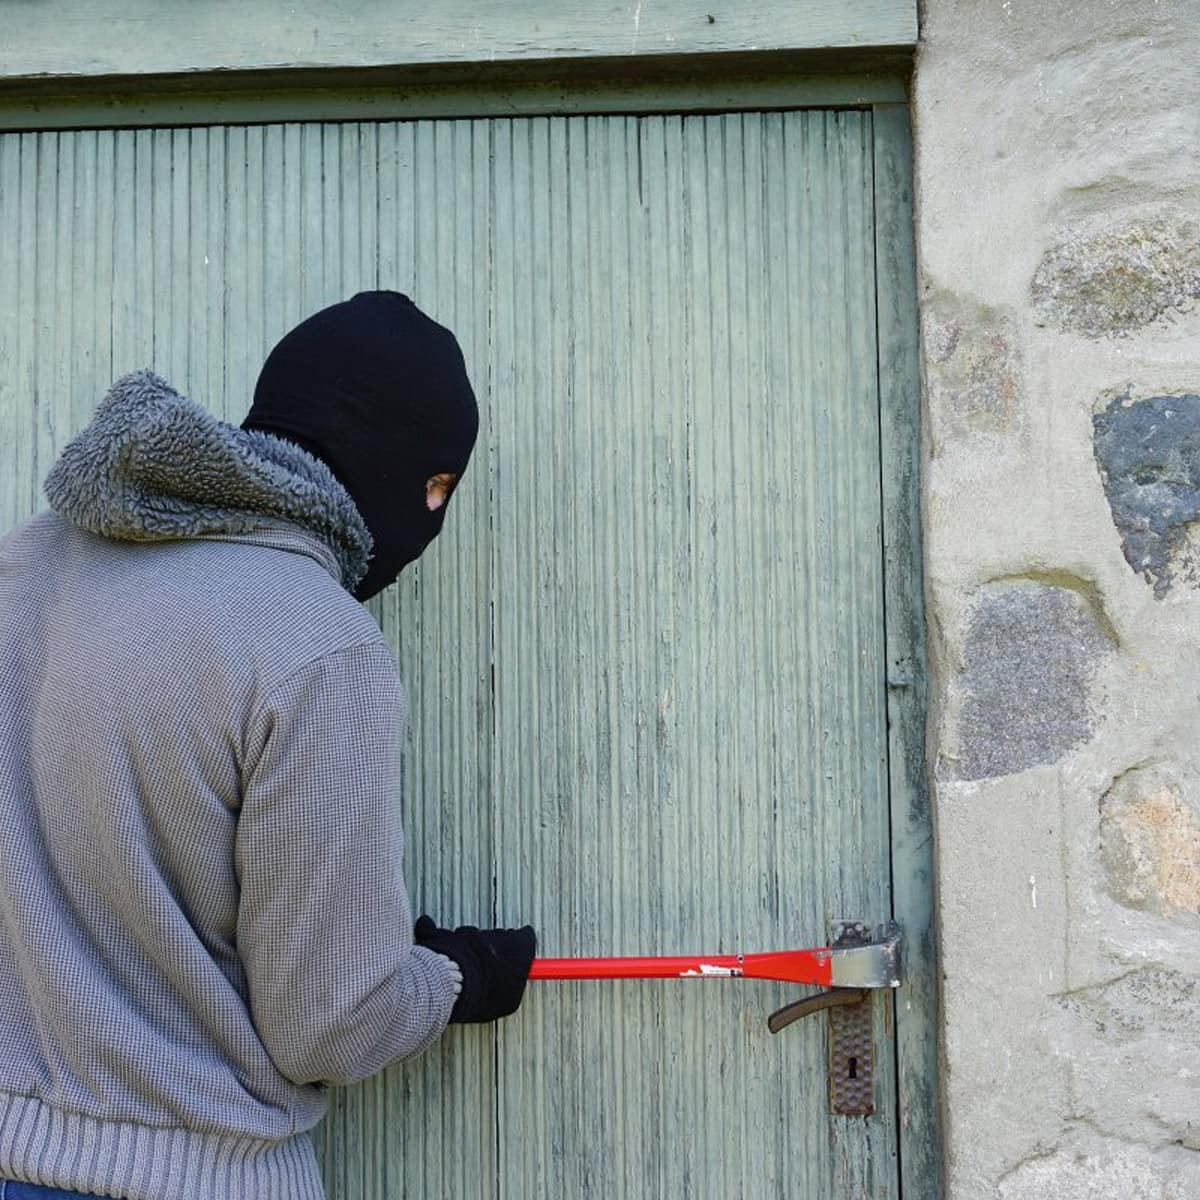 What is Burglary?